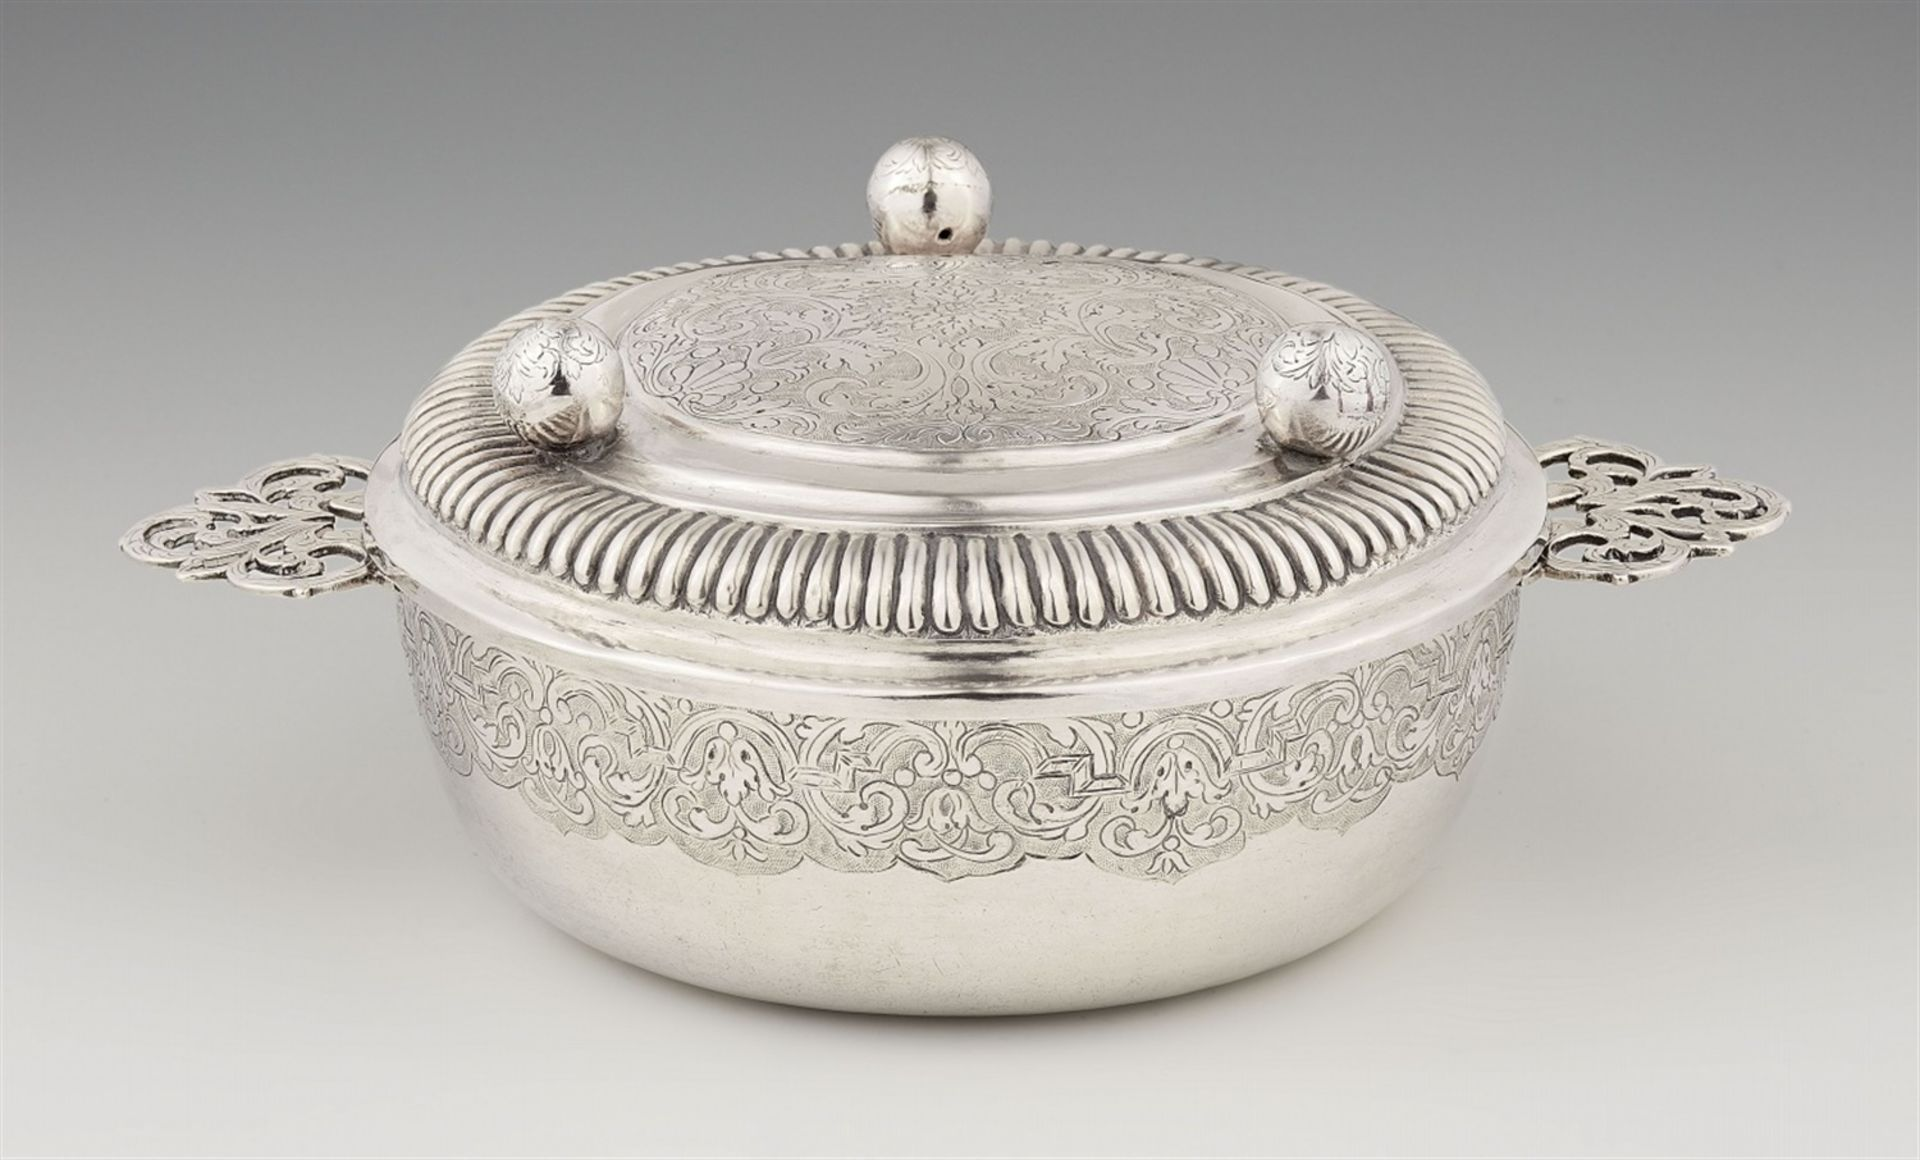 Los 733 - An Osnabrück silver ecuelleSilver. A slightly tapering dish with pierced handles and engraved